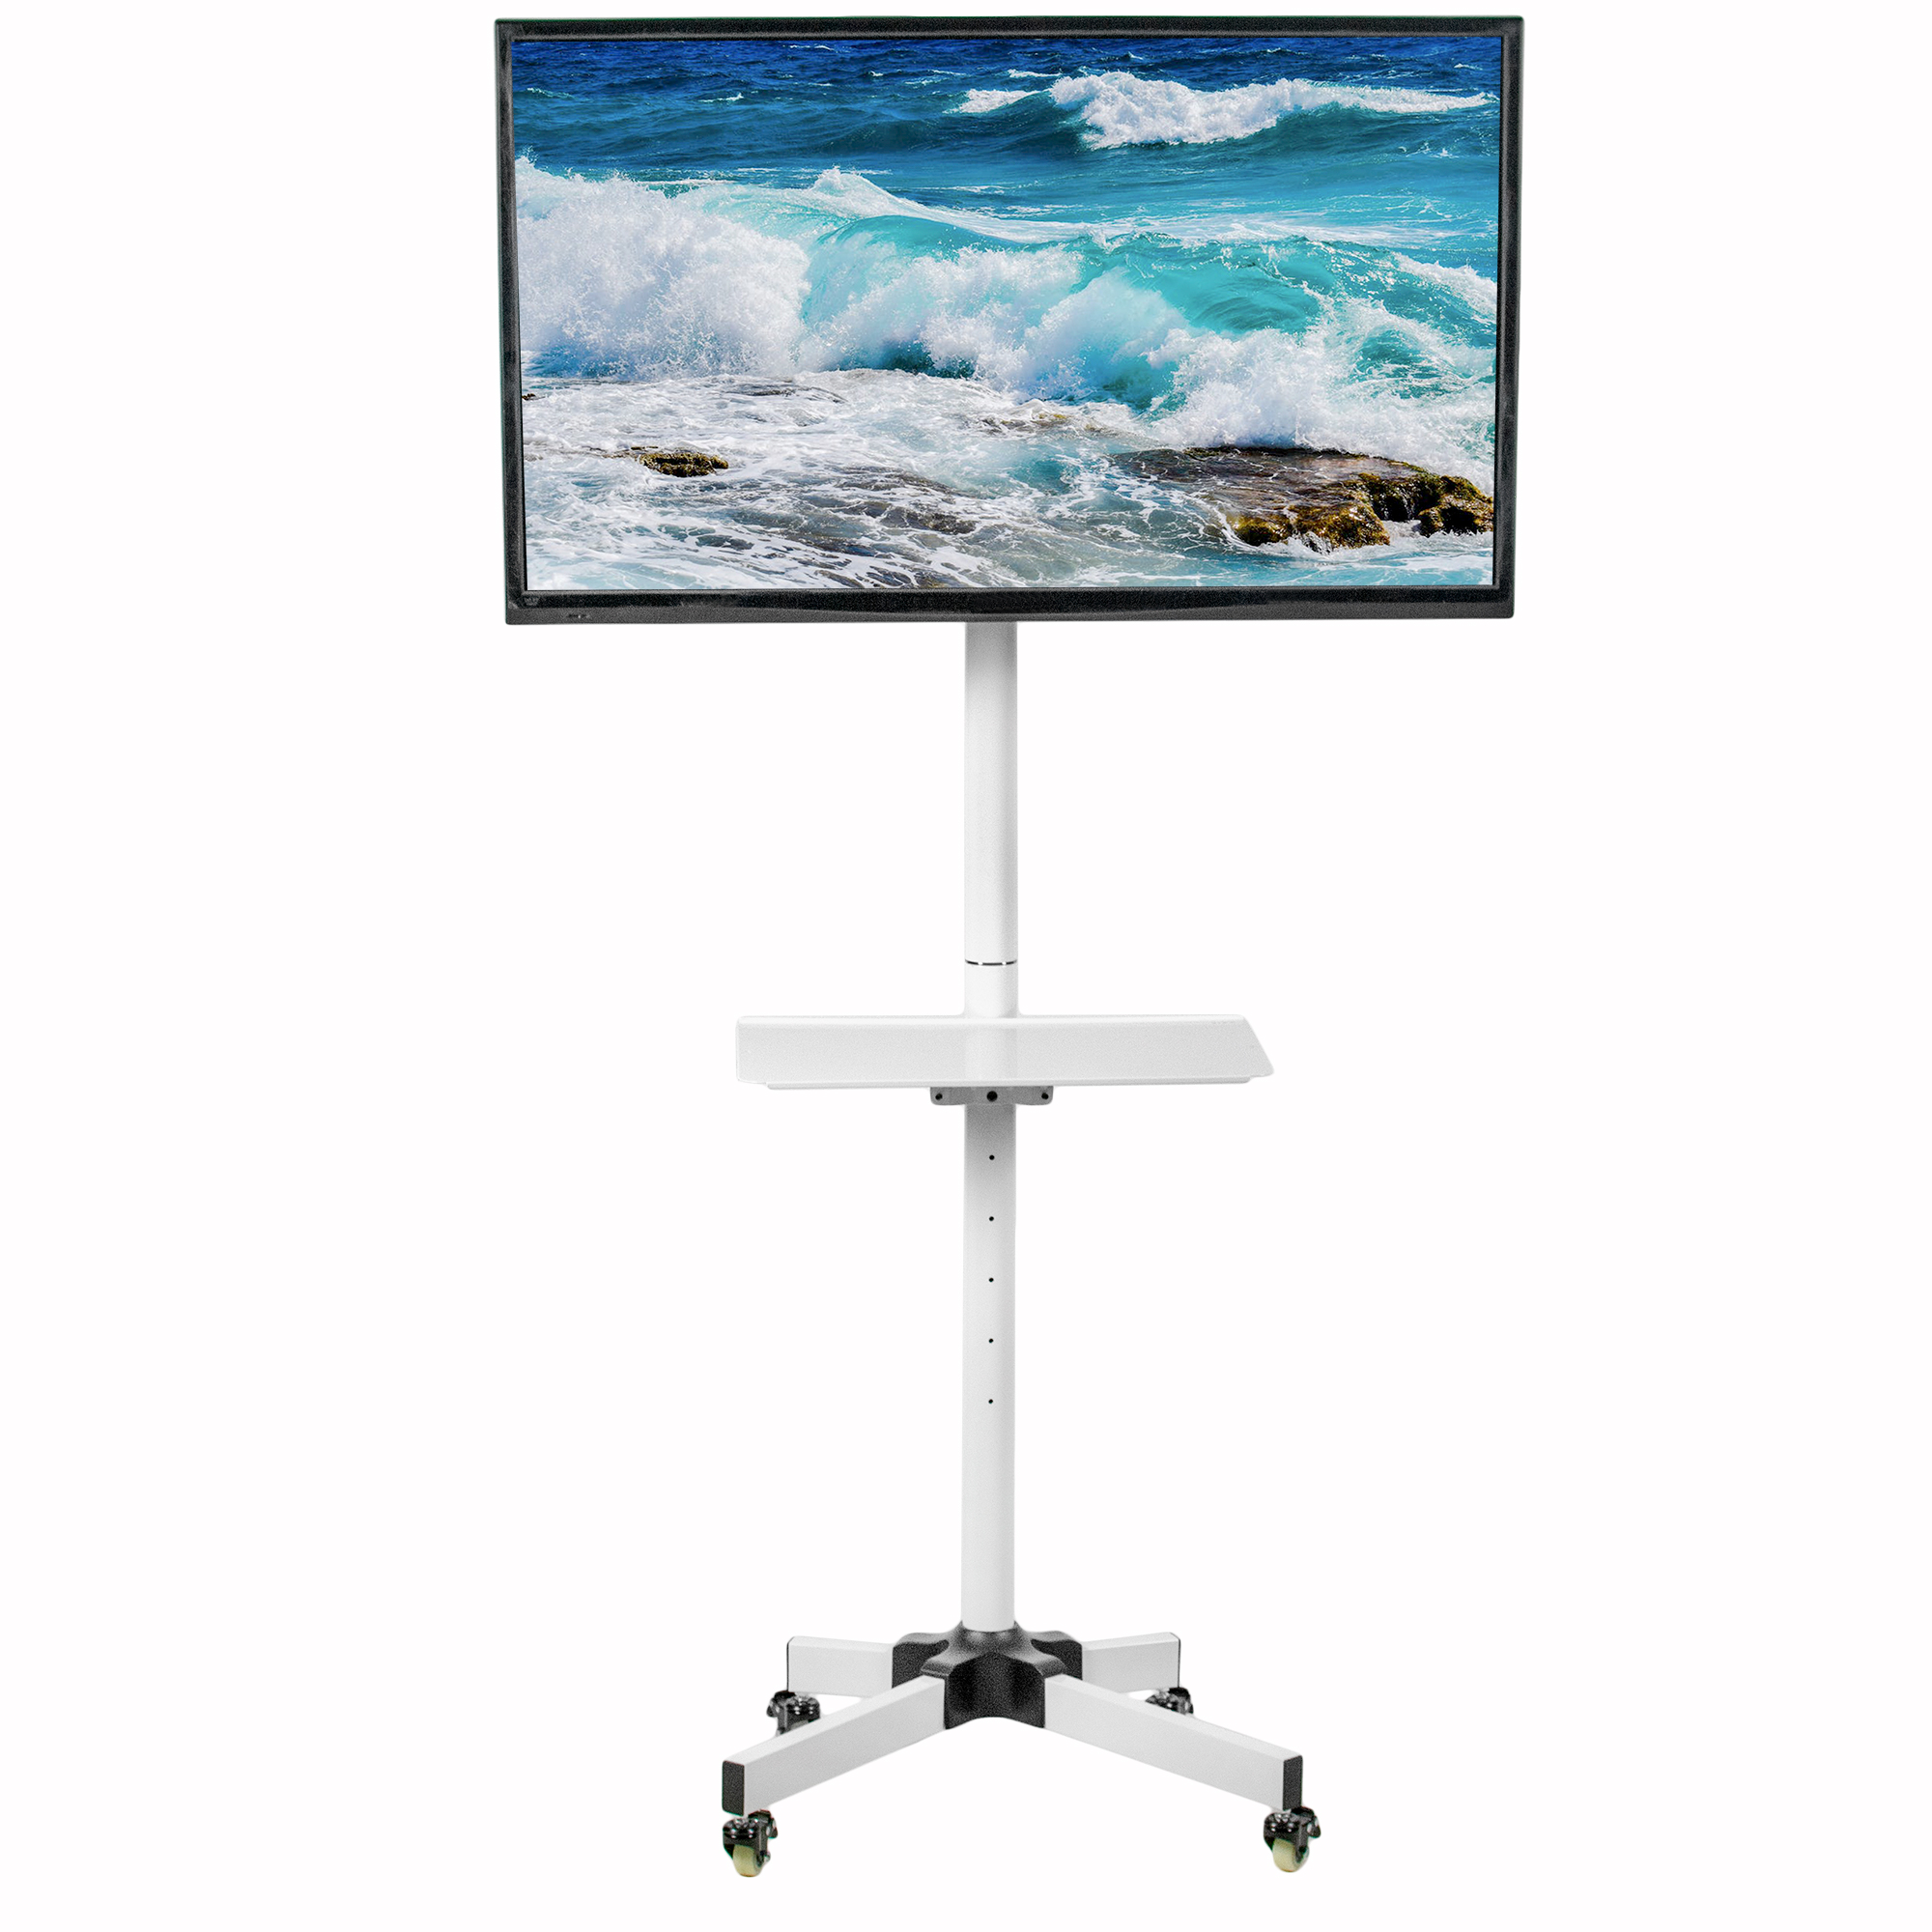 Vivo White Mobile Tv Cart For 23 To 55 Lcd Led Plasma Flat Screens Trolley Floor Stand With Wheels Tv04mw